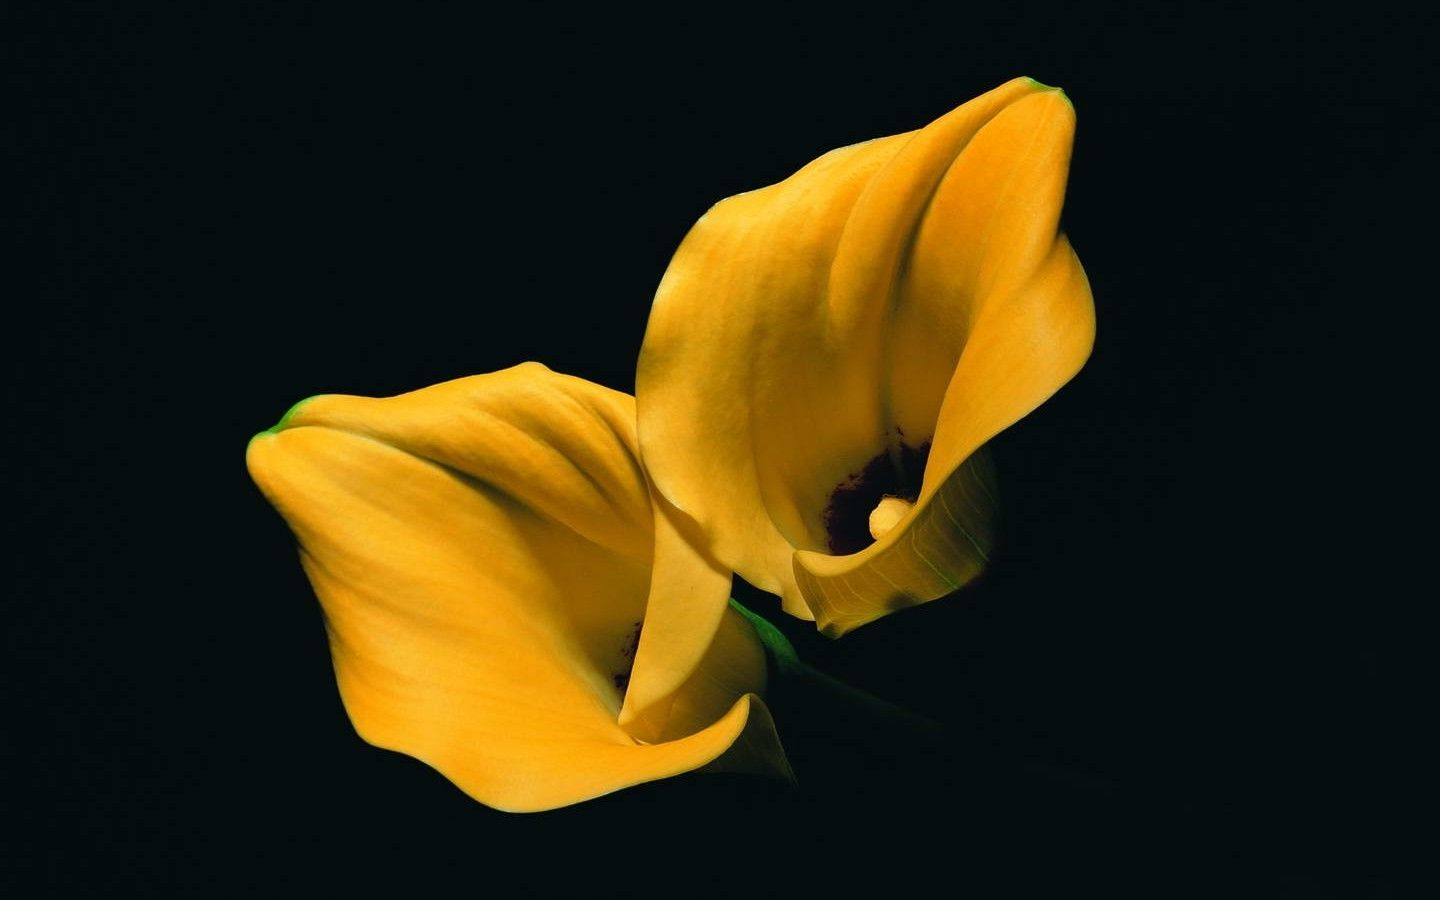 lilies, Yellow Flowers, Flowers, Black Background ...